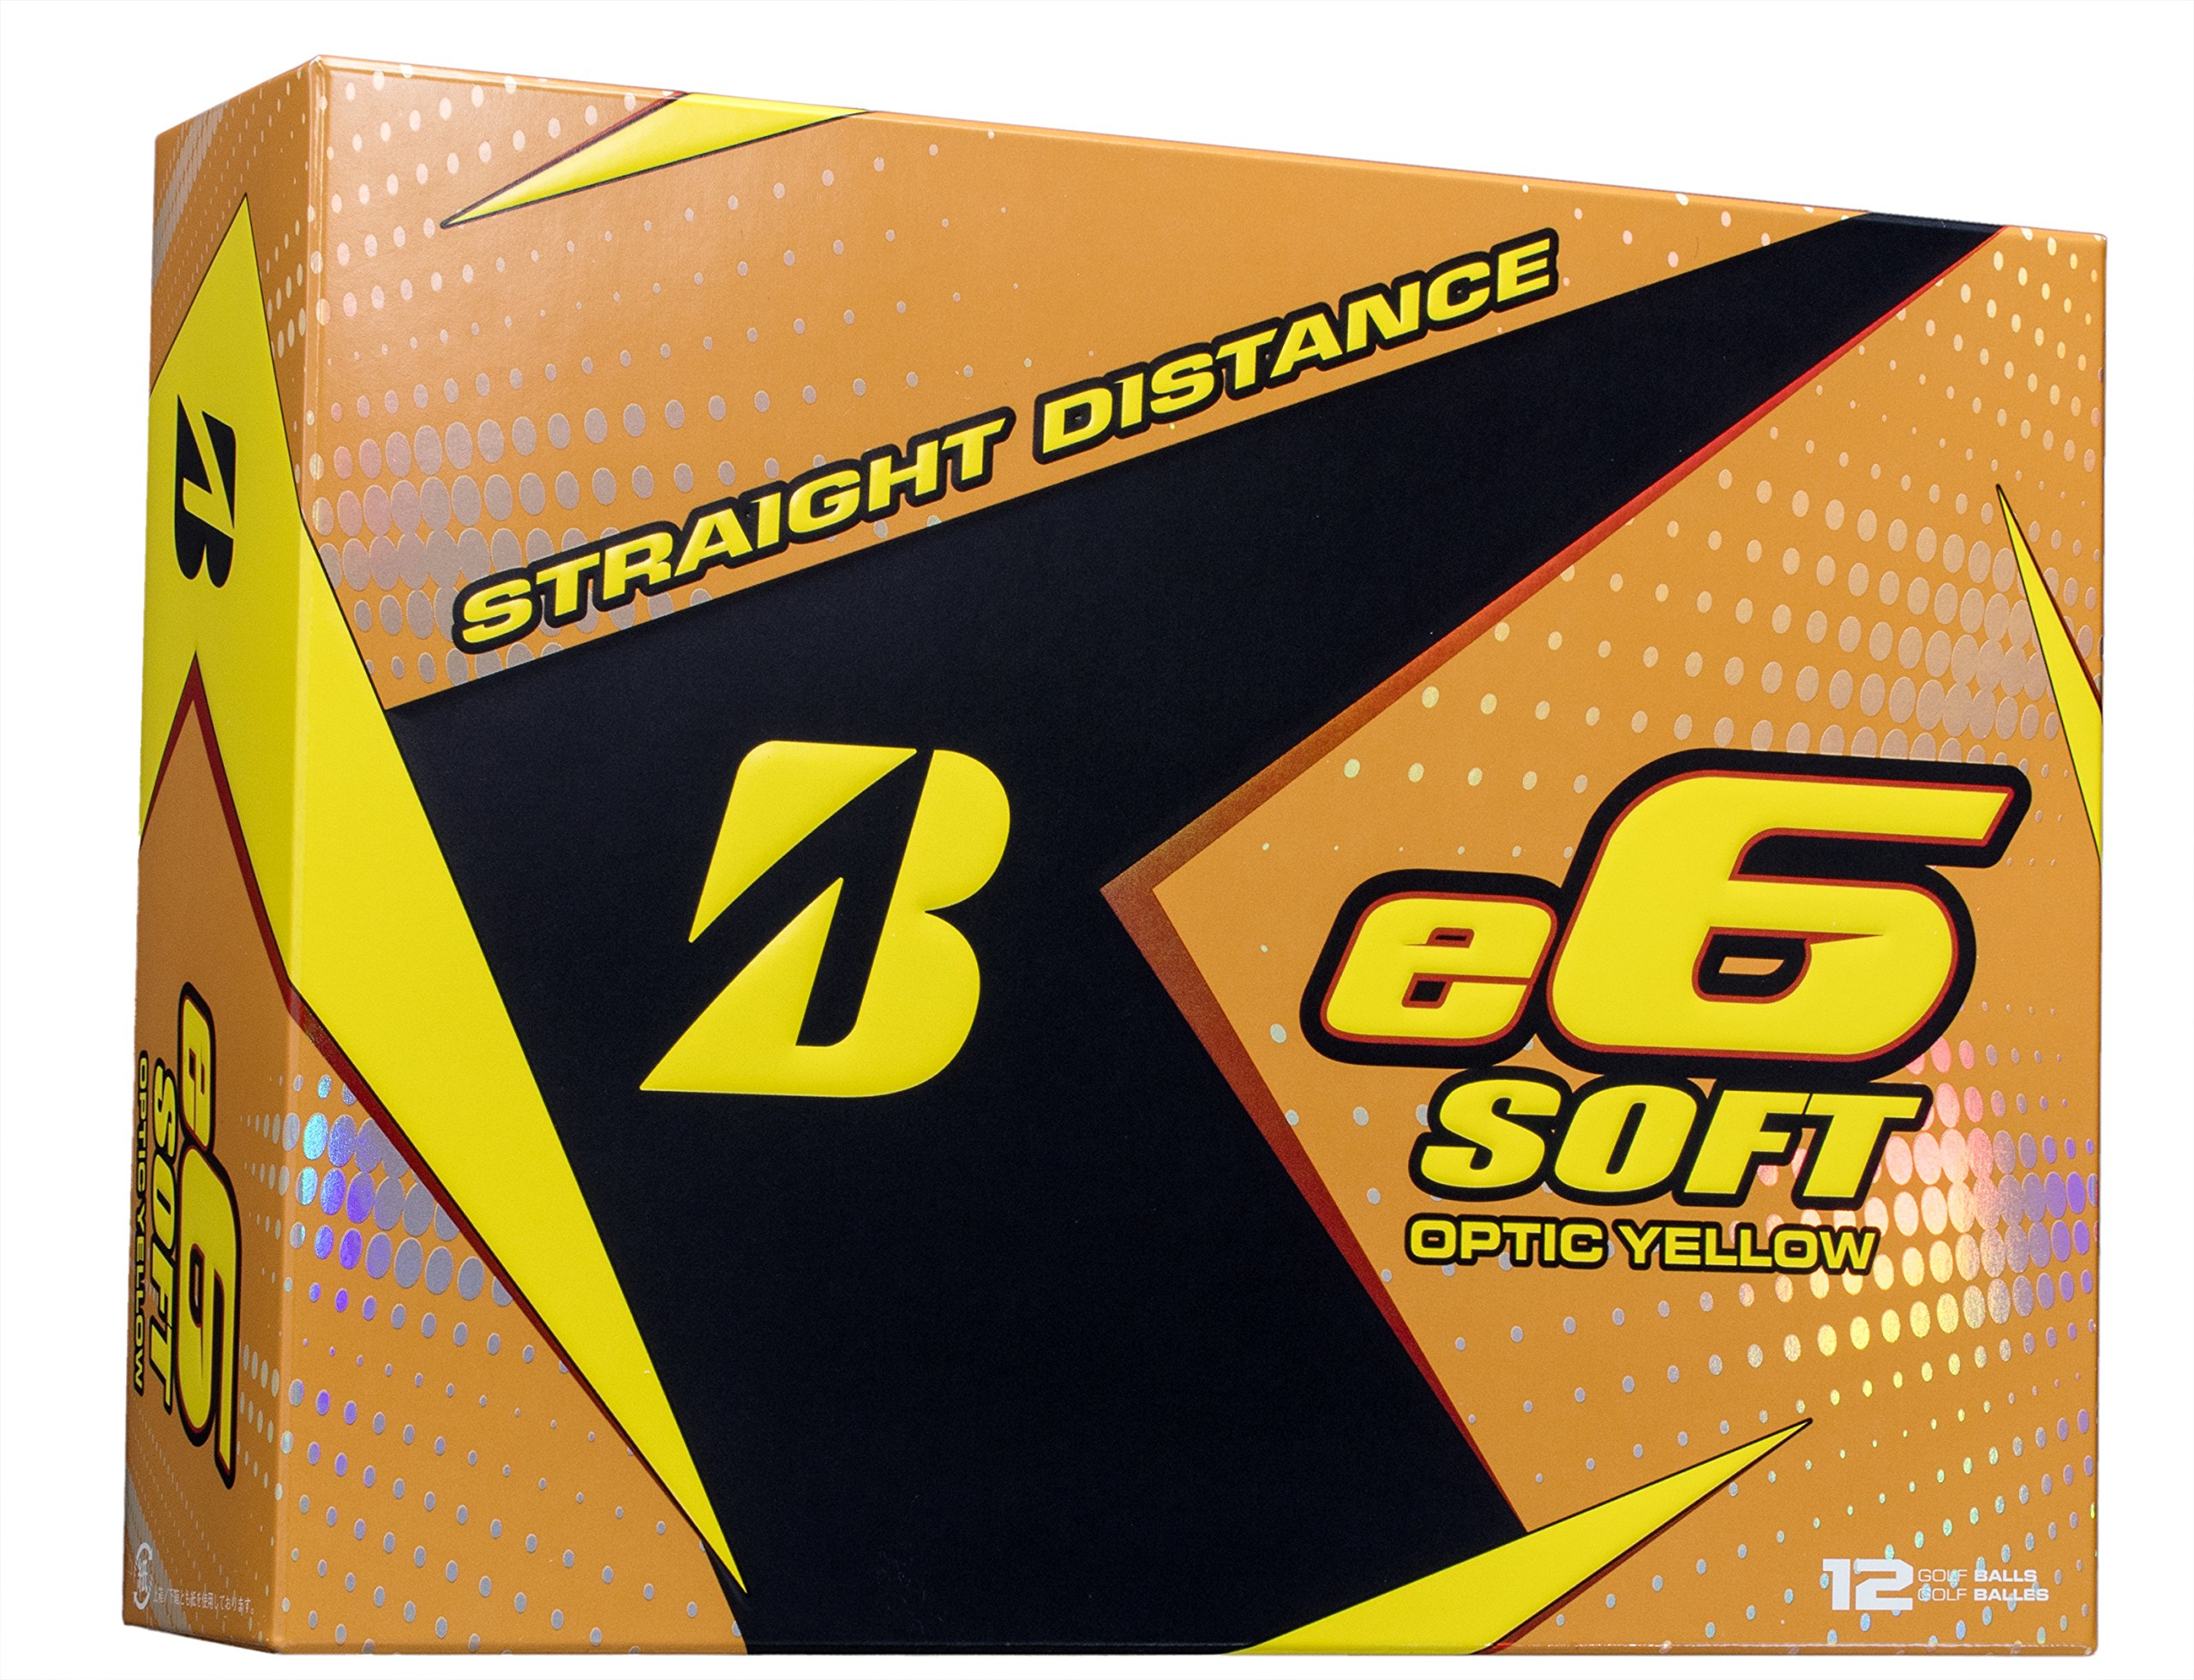 BRIDGESTONE GOLF e6 SOFT Golf Balls, Yellow, Soft, Colored Golf Balls (Dozen Golf Balls) by Bridgestone Golf